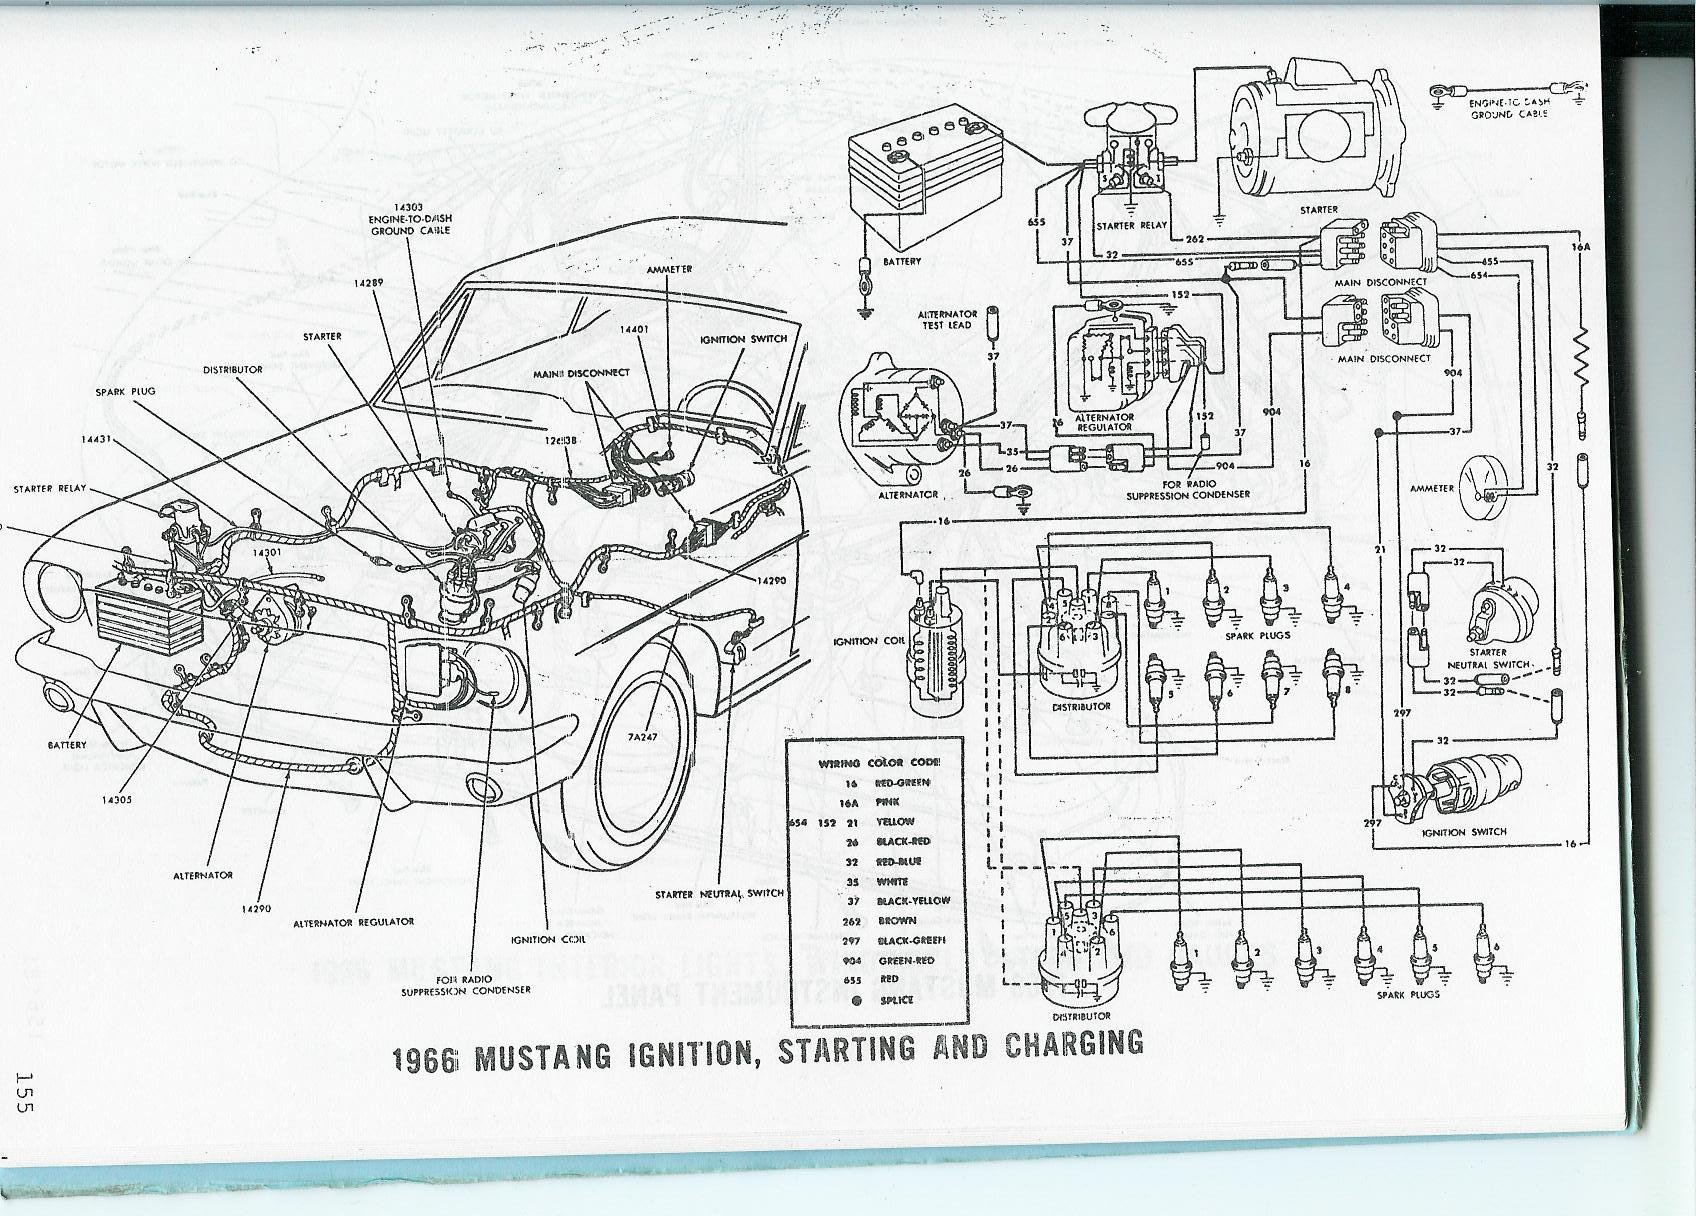 wiring diagram for 1966 ford mustang – the wiring diagram, Wiring diagram